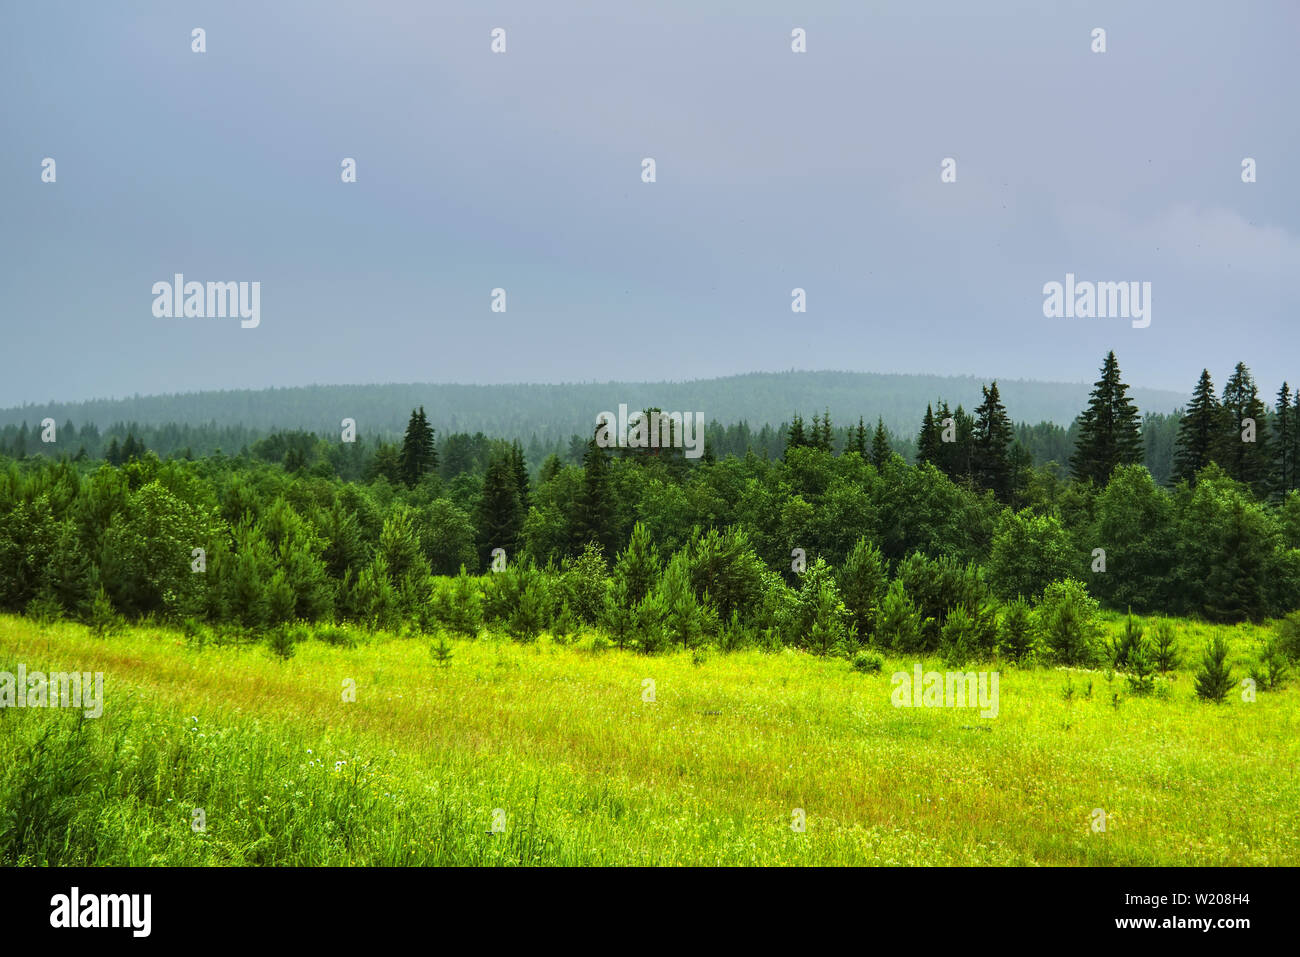 Summer landscape with green grass and wild flowers on the background of a coniferous forest. Stock Photo